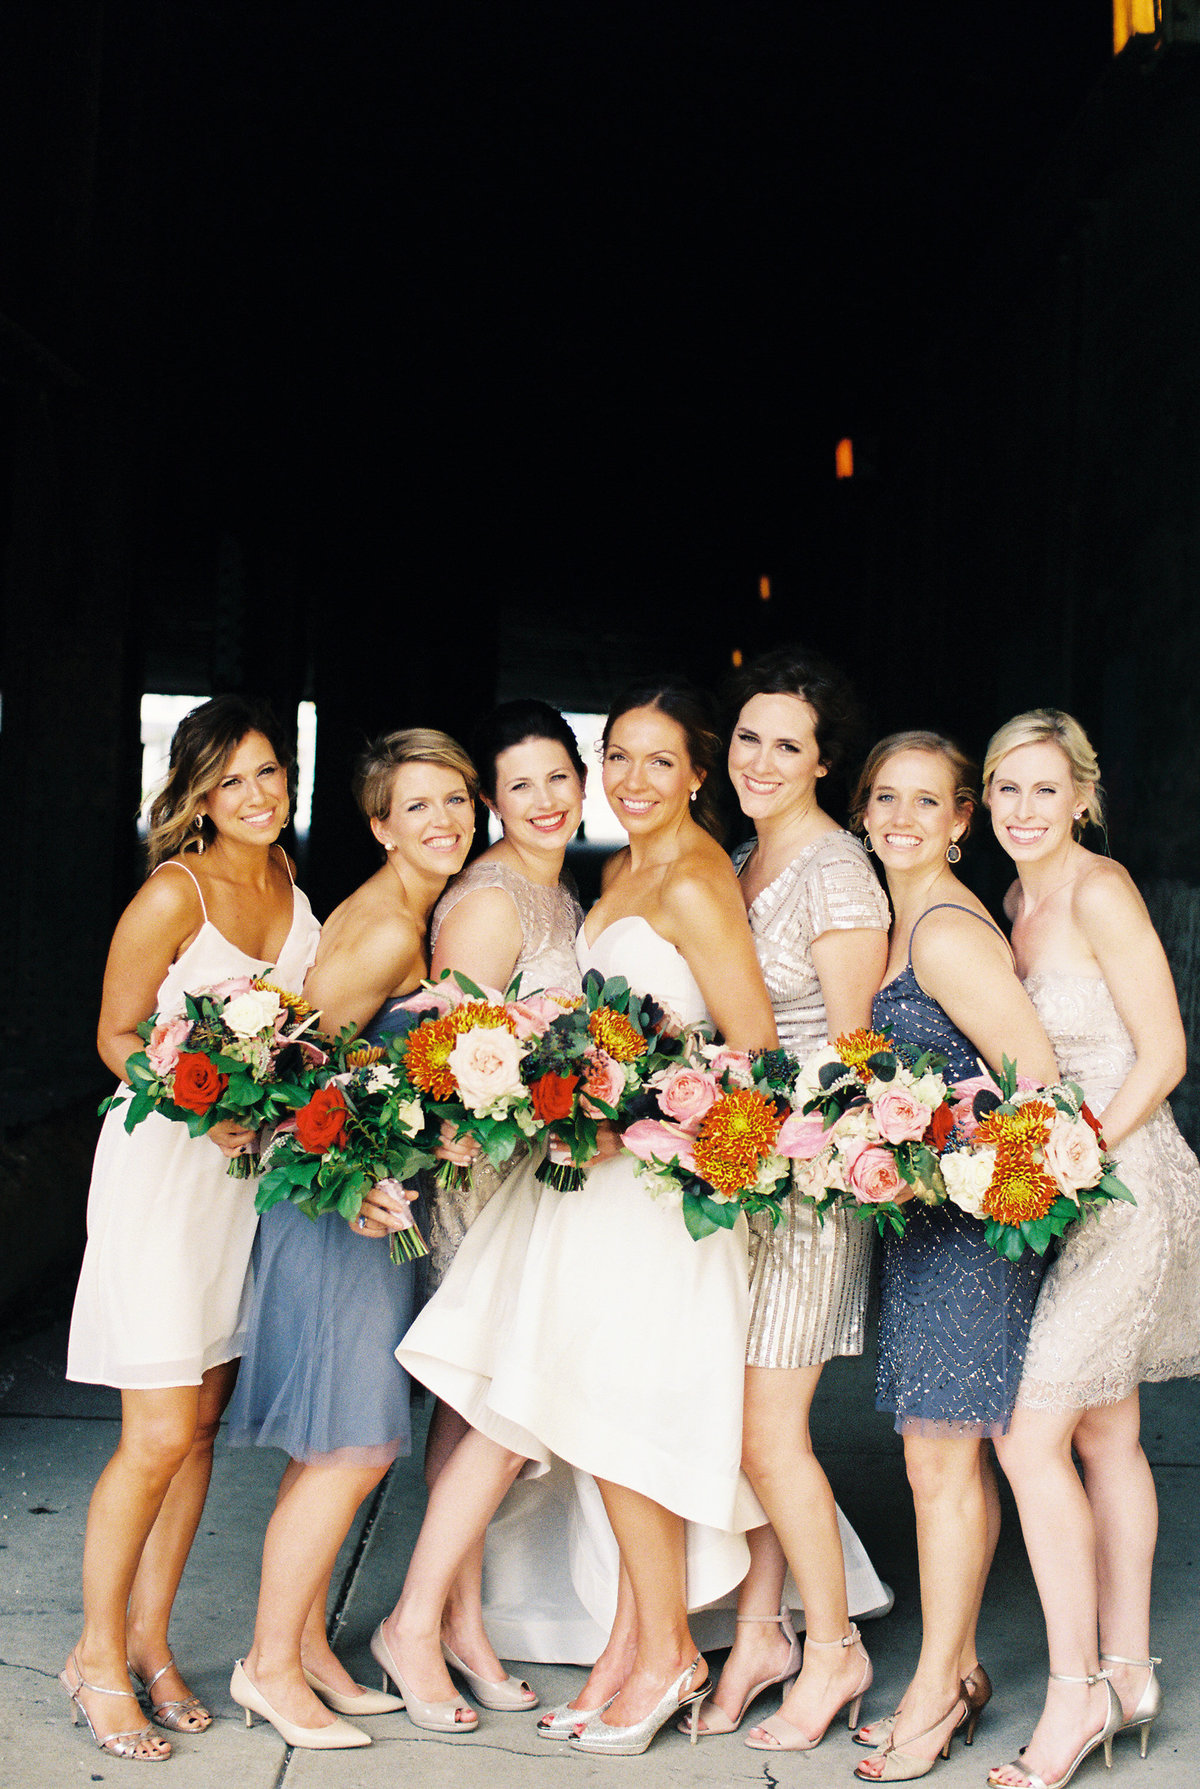 Wedding - Caitlin Sullivan - Indianapolis, Indiana Photographer - Photo - 3